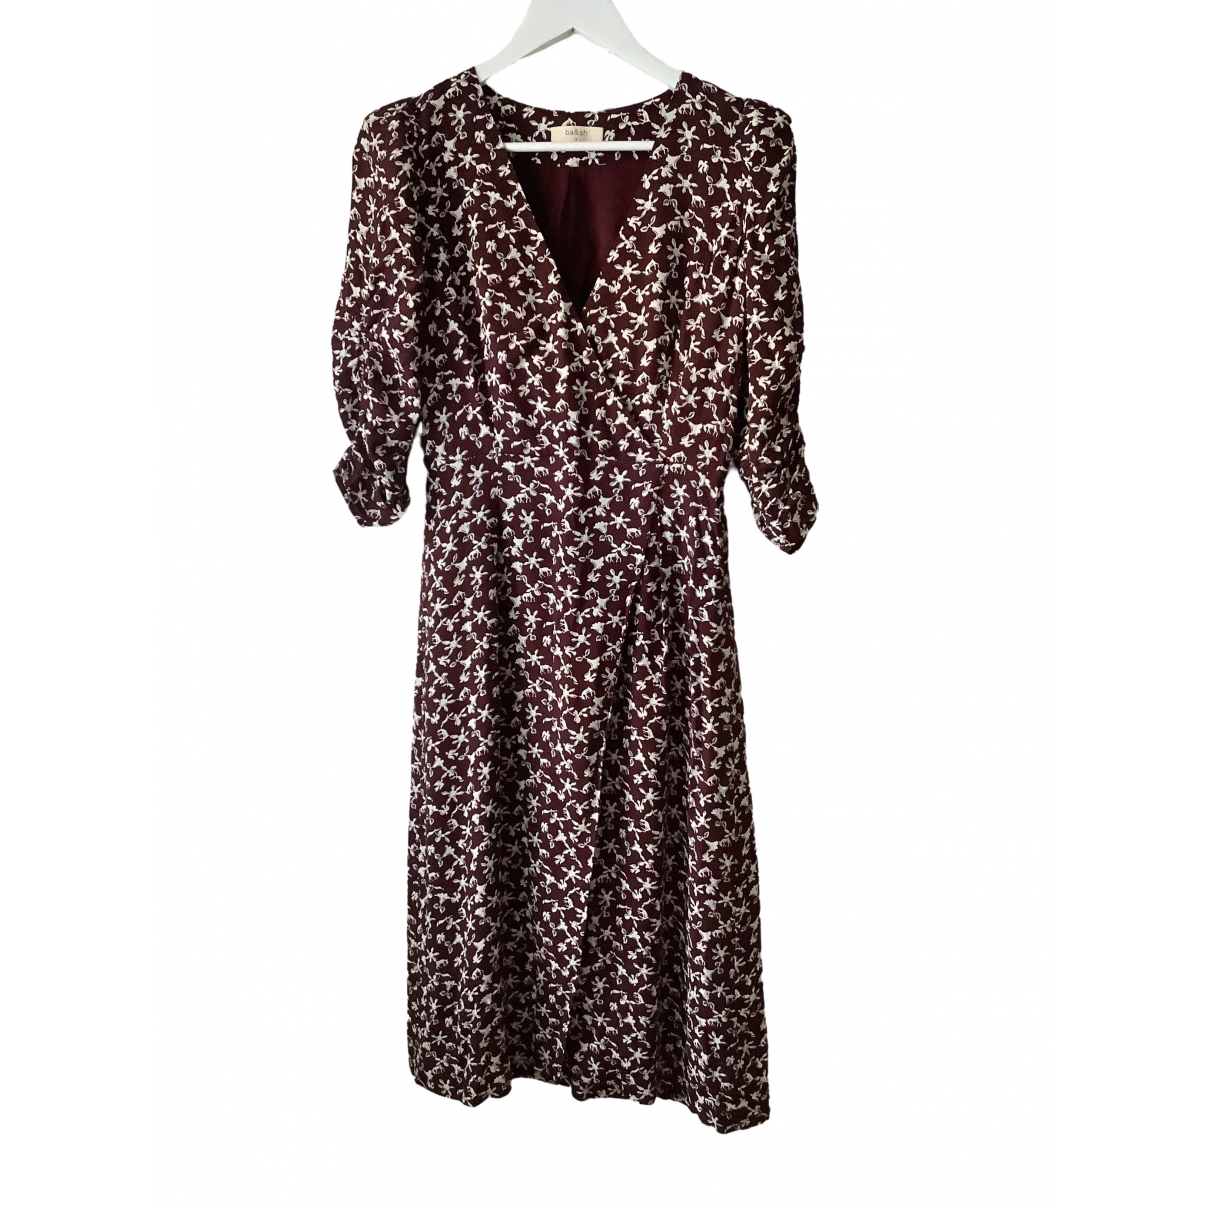 Ba&sh \N Burgundy dress for Women 36 FR